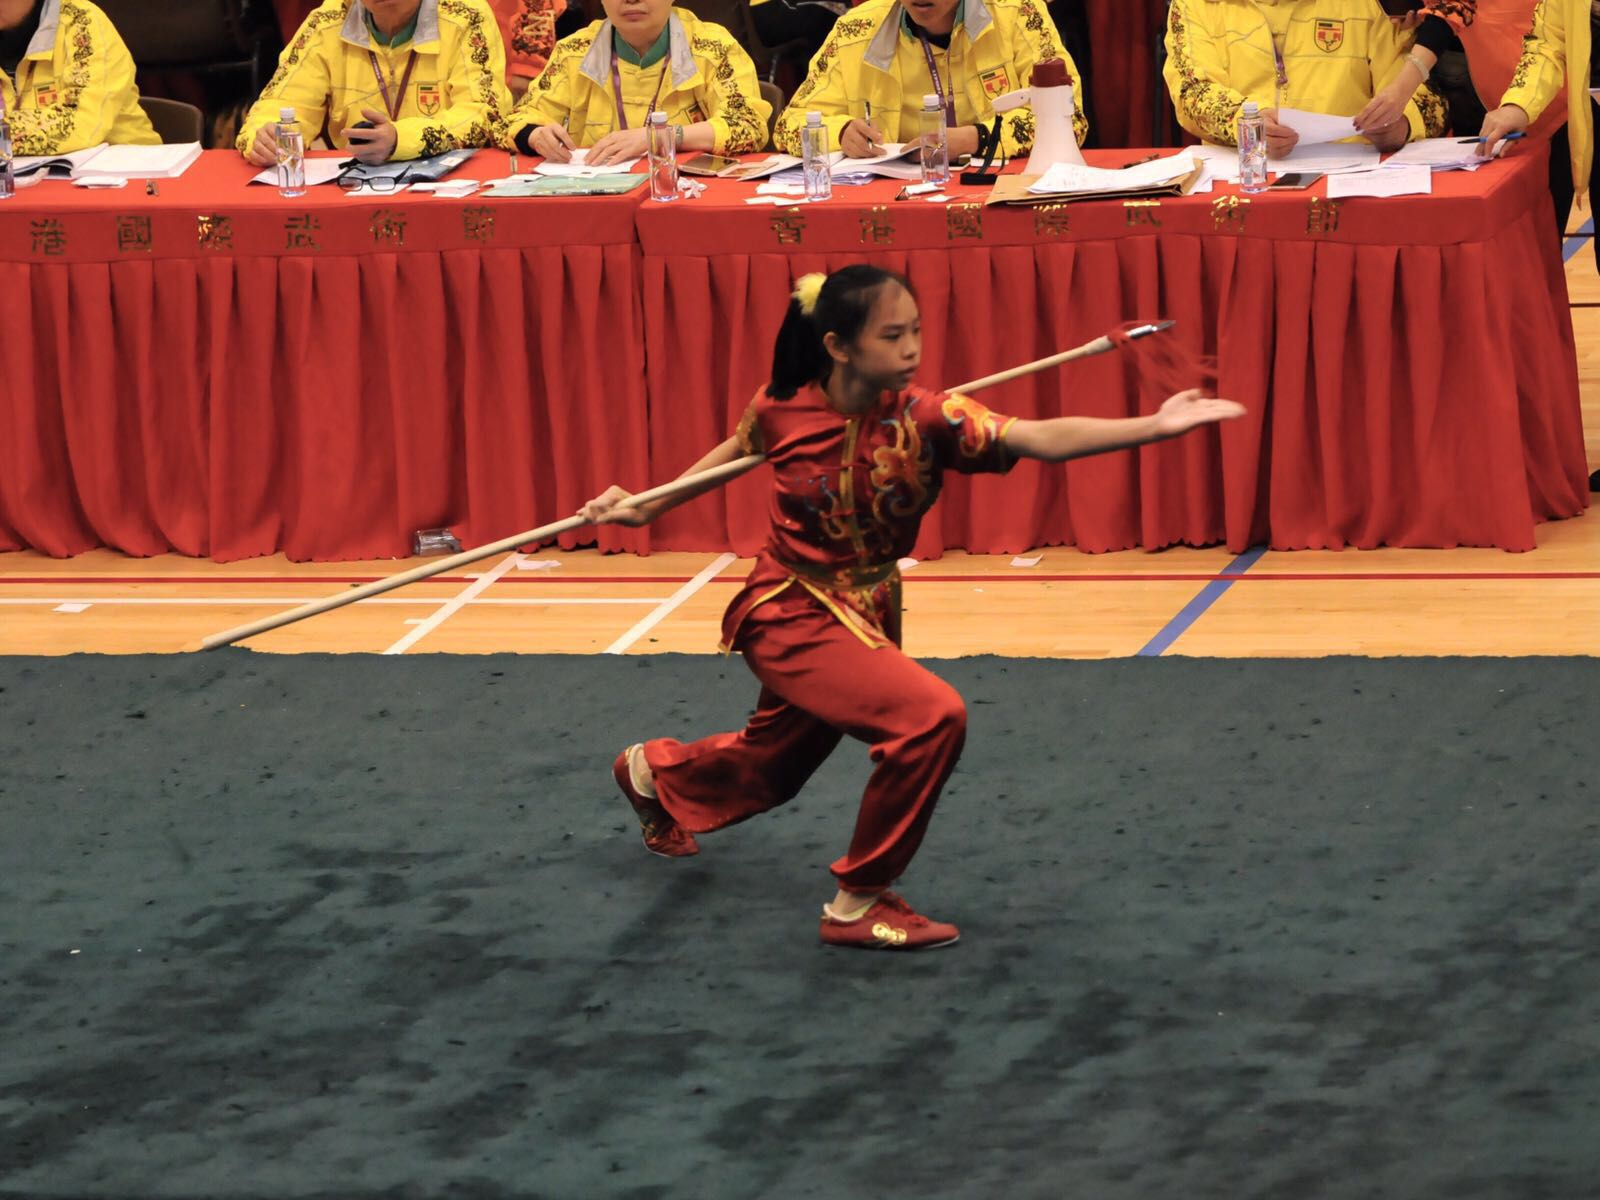 Xuan Sports Athlete Le Yin Shuen at the 15th Hong Kong Wushu